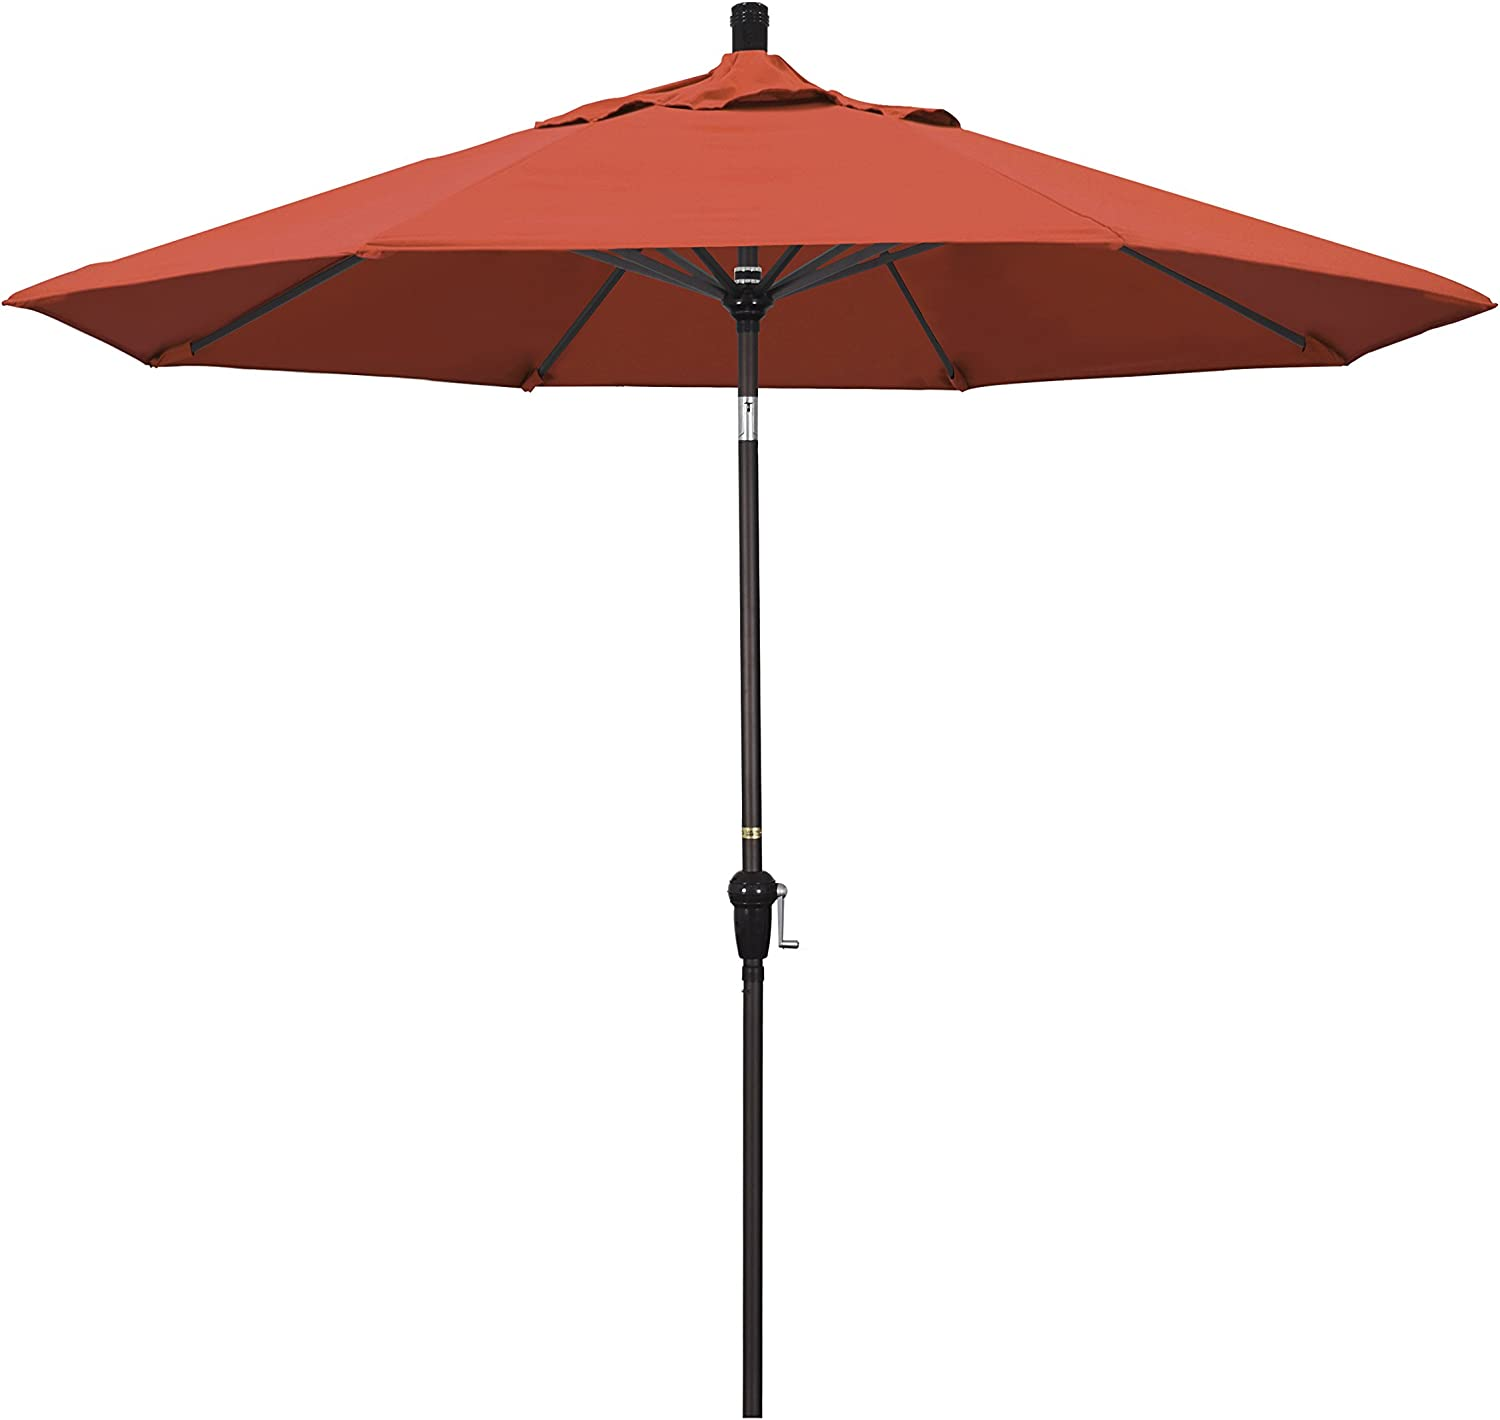 California Umbrella 9 Round Aluminum Market Umbrella, Crank Lift, Auto Tilt, Bronze Pole, Sunset